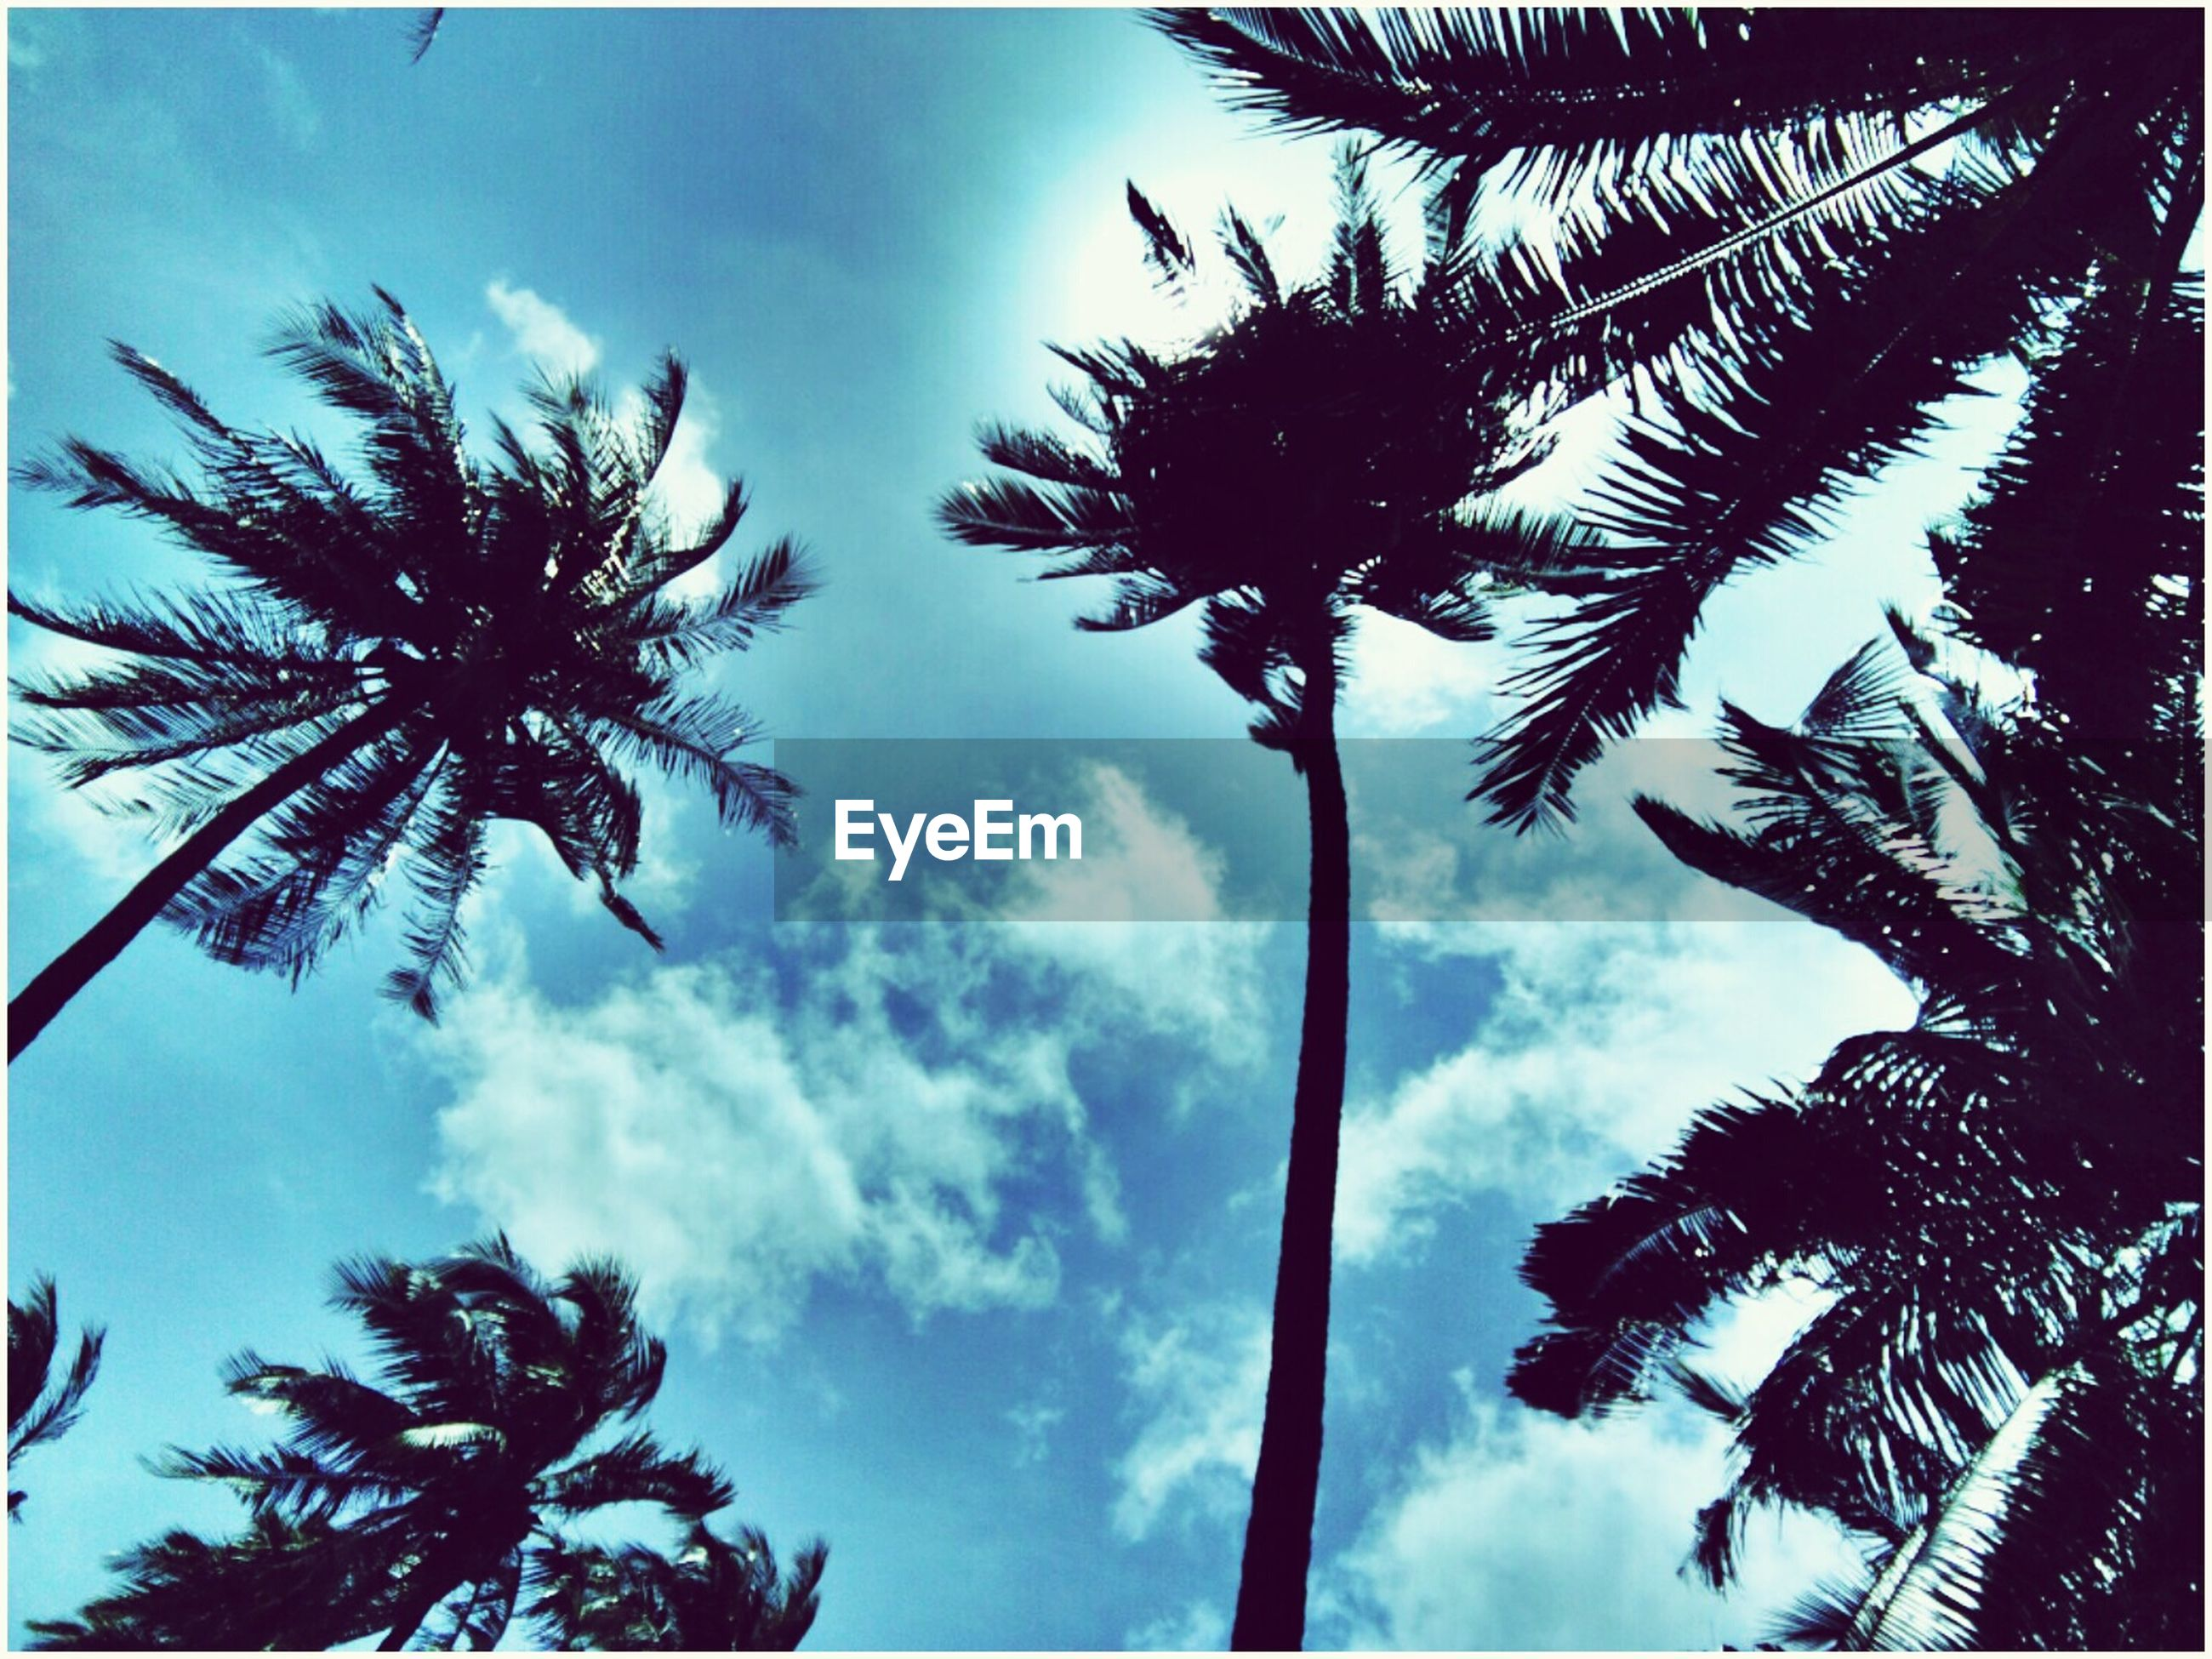 palm tree, low angle view, tree, tree trunk, tall - high, sky, growth, scenics, nature, tranquility, tranquil scene, beauty in nature, coconut palm tree, silhouette, cloud - sky, blue, outdoors, day, tropical climate, tall, branch, palm frond, treetop, outline, tropical tree, no people, palm leaf, non-urban scene, cloudy, majestic, solitude